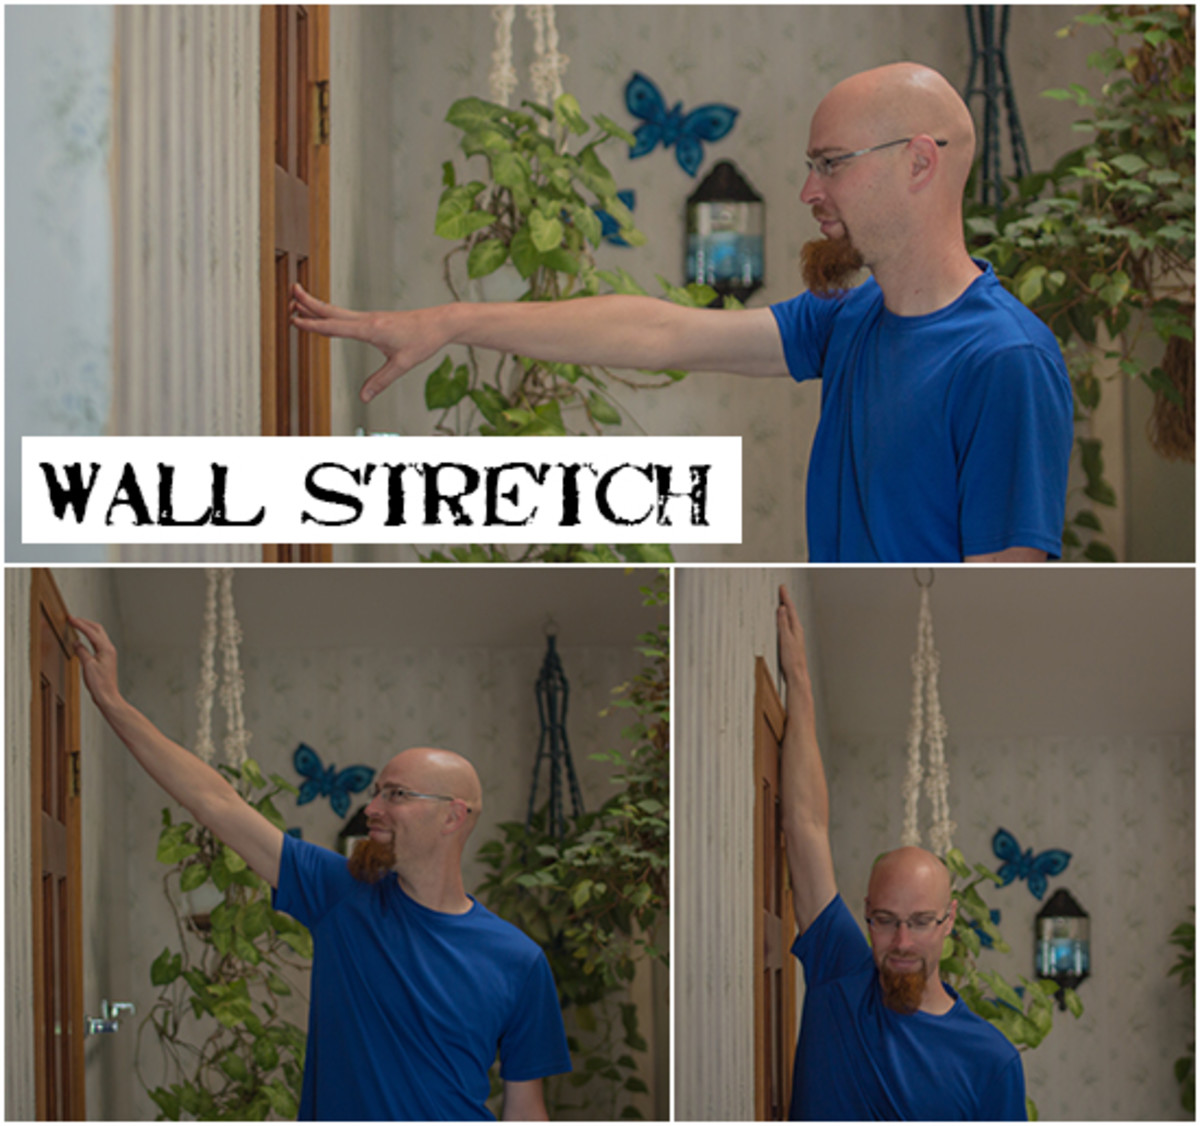 For the wall stretch, walk your fingers up the wall. You can do this stretch both with your body facing the wall and with your body perpendicular to the wall.